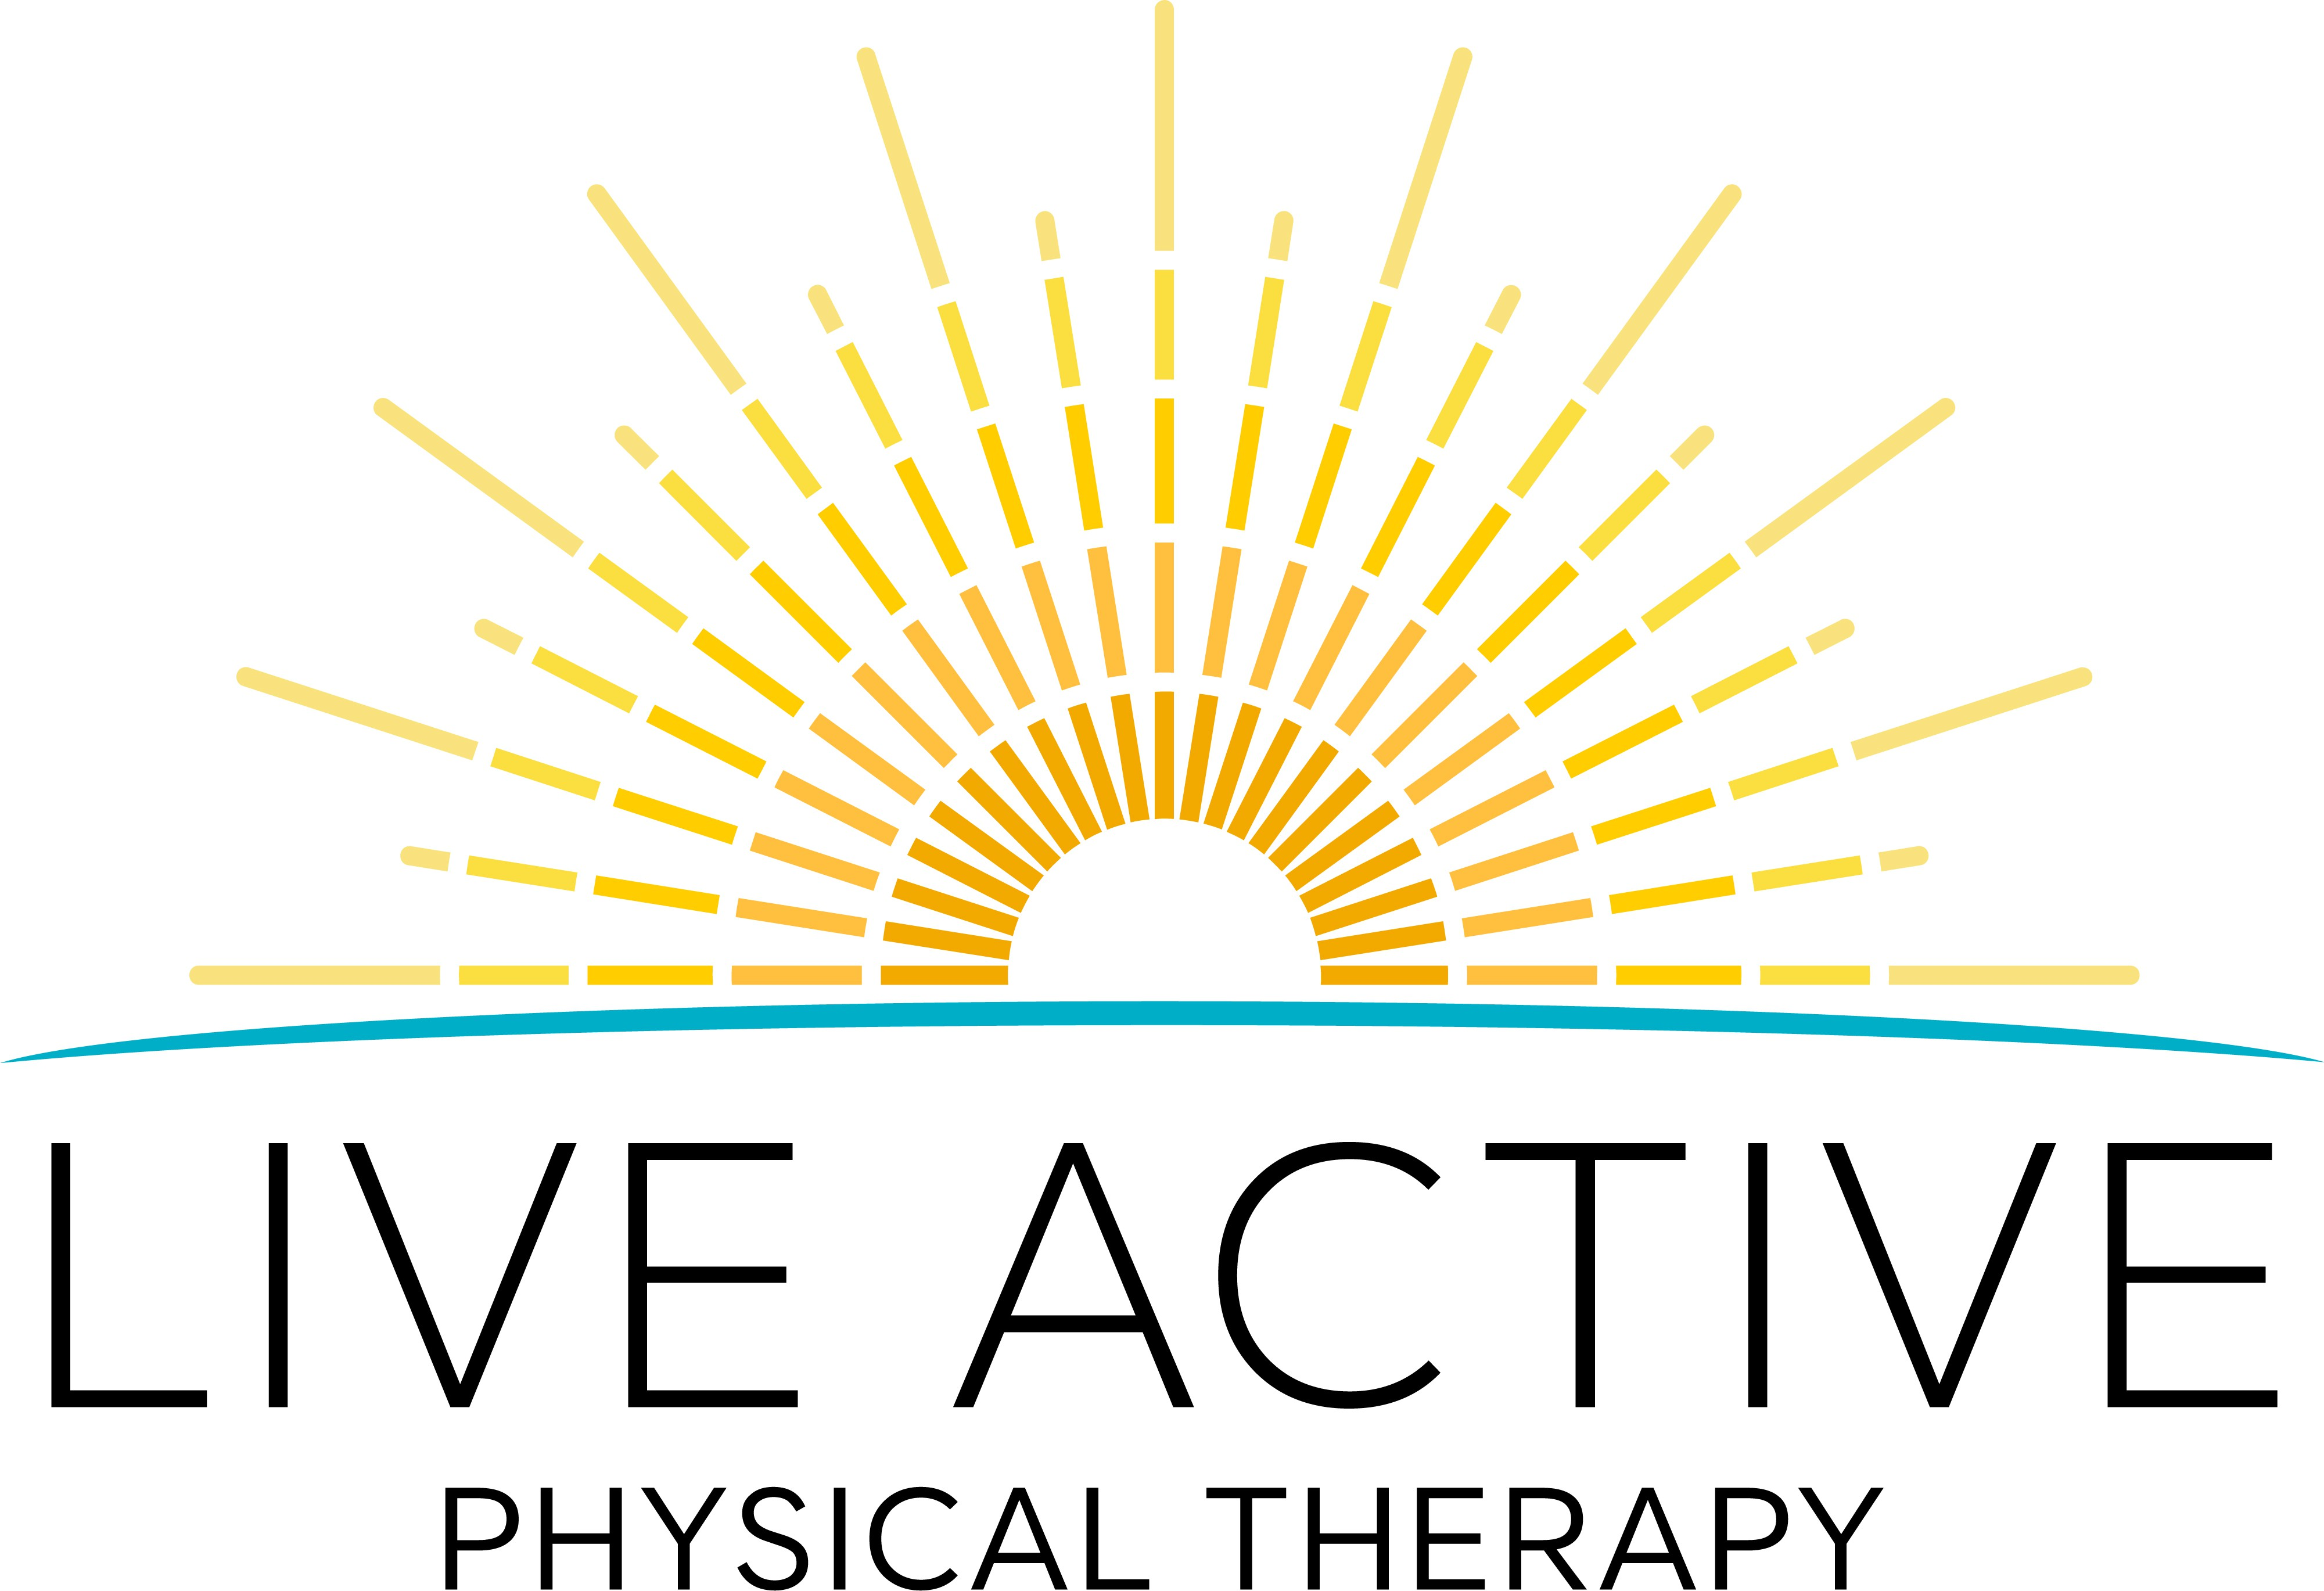 Help me kick off my mobile physical therapy business in San diego